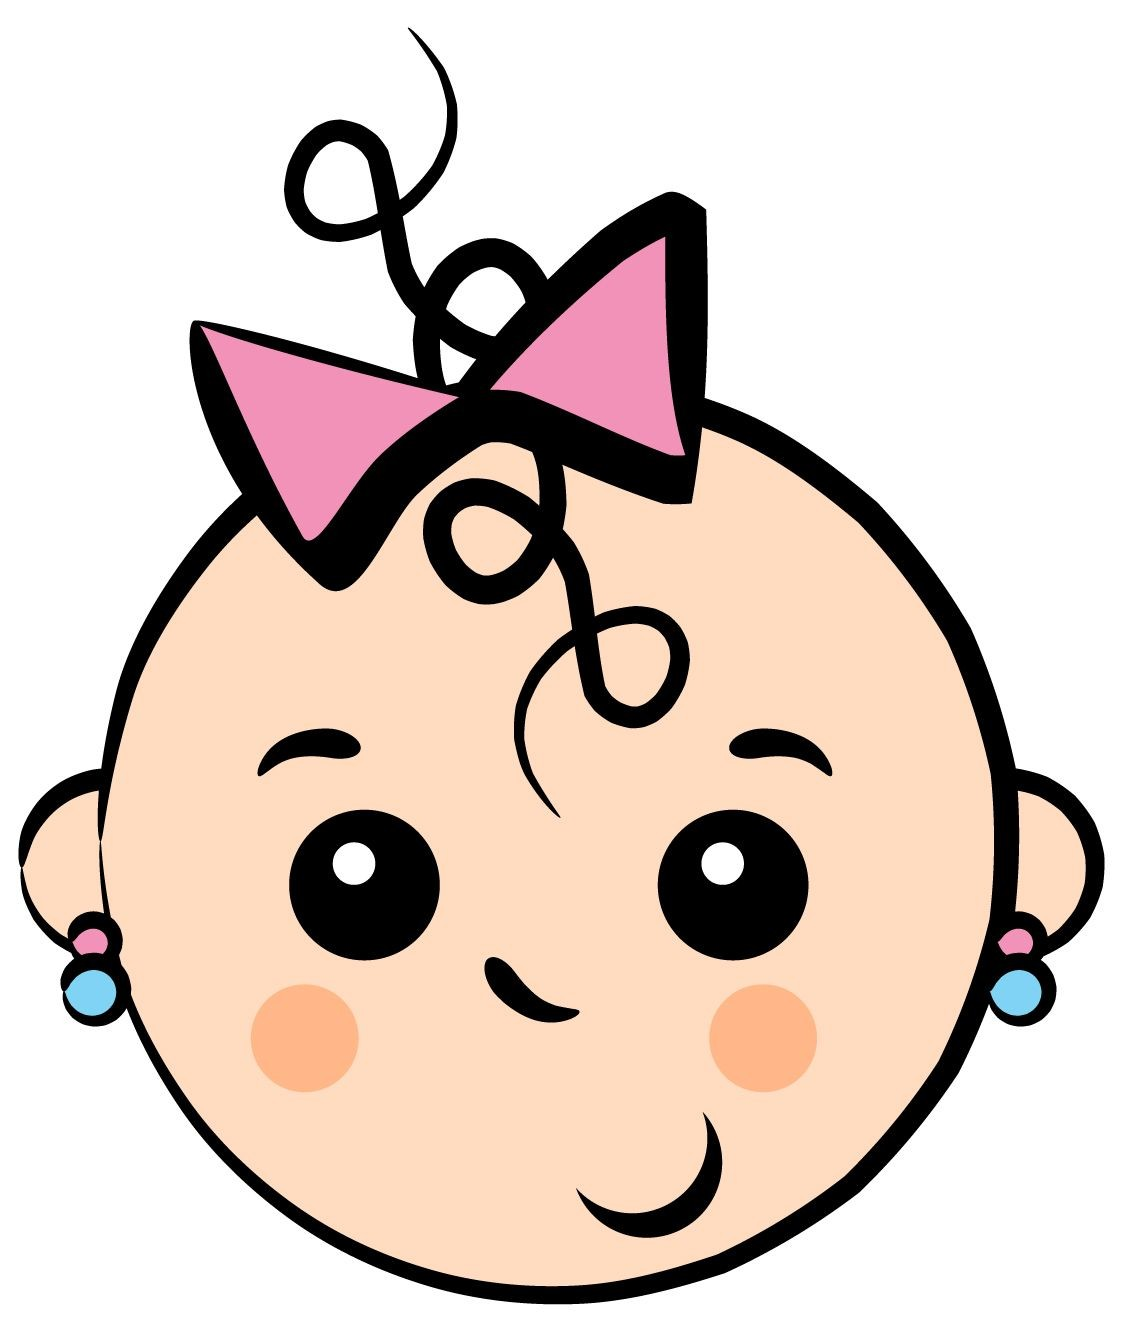 cool girl clipart at getdrawings com free for personal use cool rh getdrawings com clipart gallery kostenlos clip art gallery lines